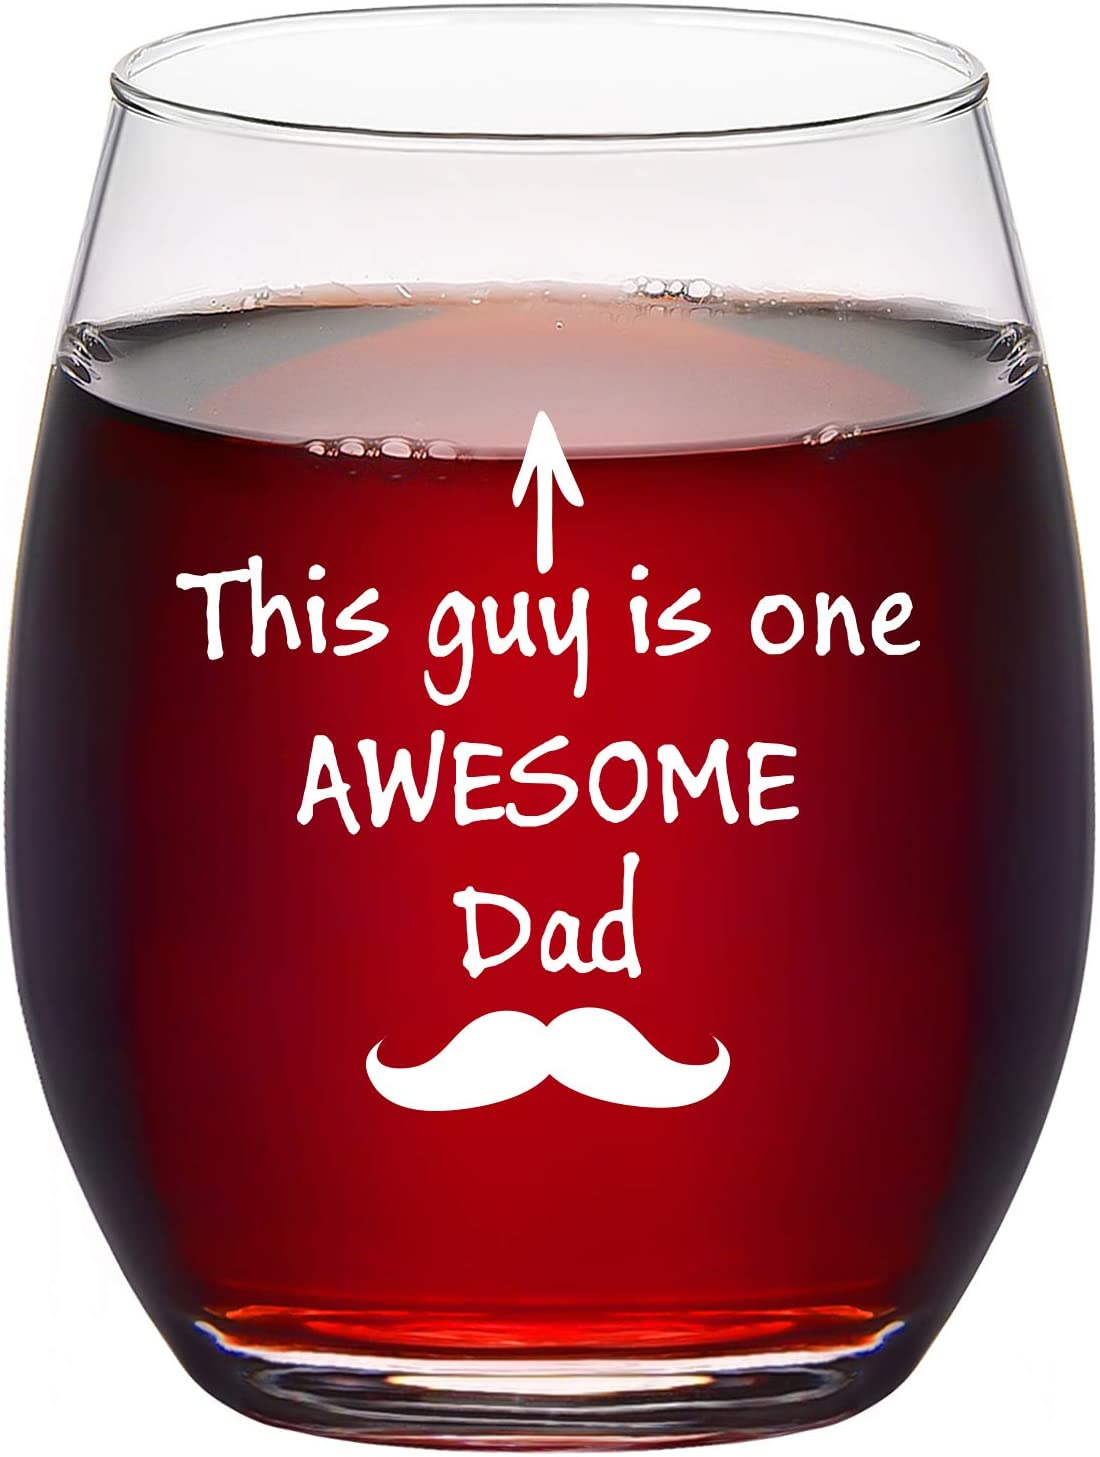 Dad Wine Glass, This Guy is One Awesome Dad Stemless Wine Glass Funny Birthday Christmas Father's Day Gifts for Dad Men Husband Him Father, Novelty Fathers Day Wine Gifts Idea, 15Oz